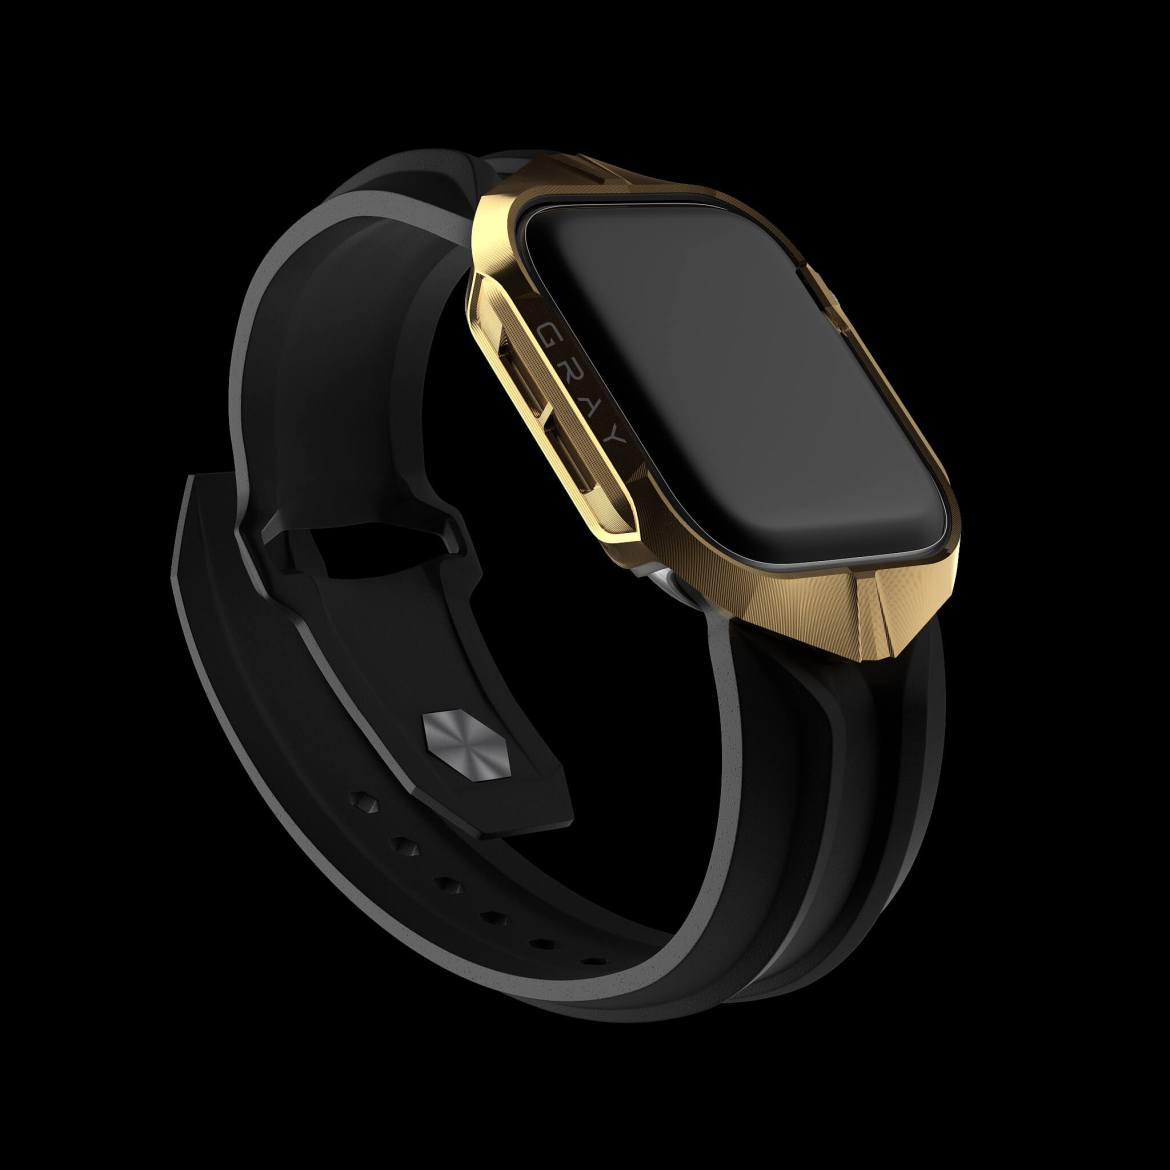 Gray has luxury Apple Watch cases and bands